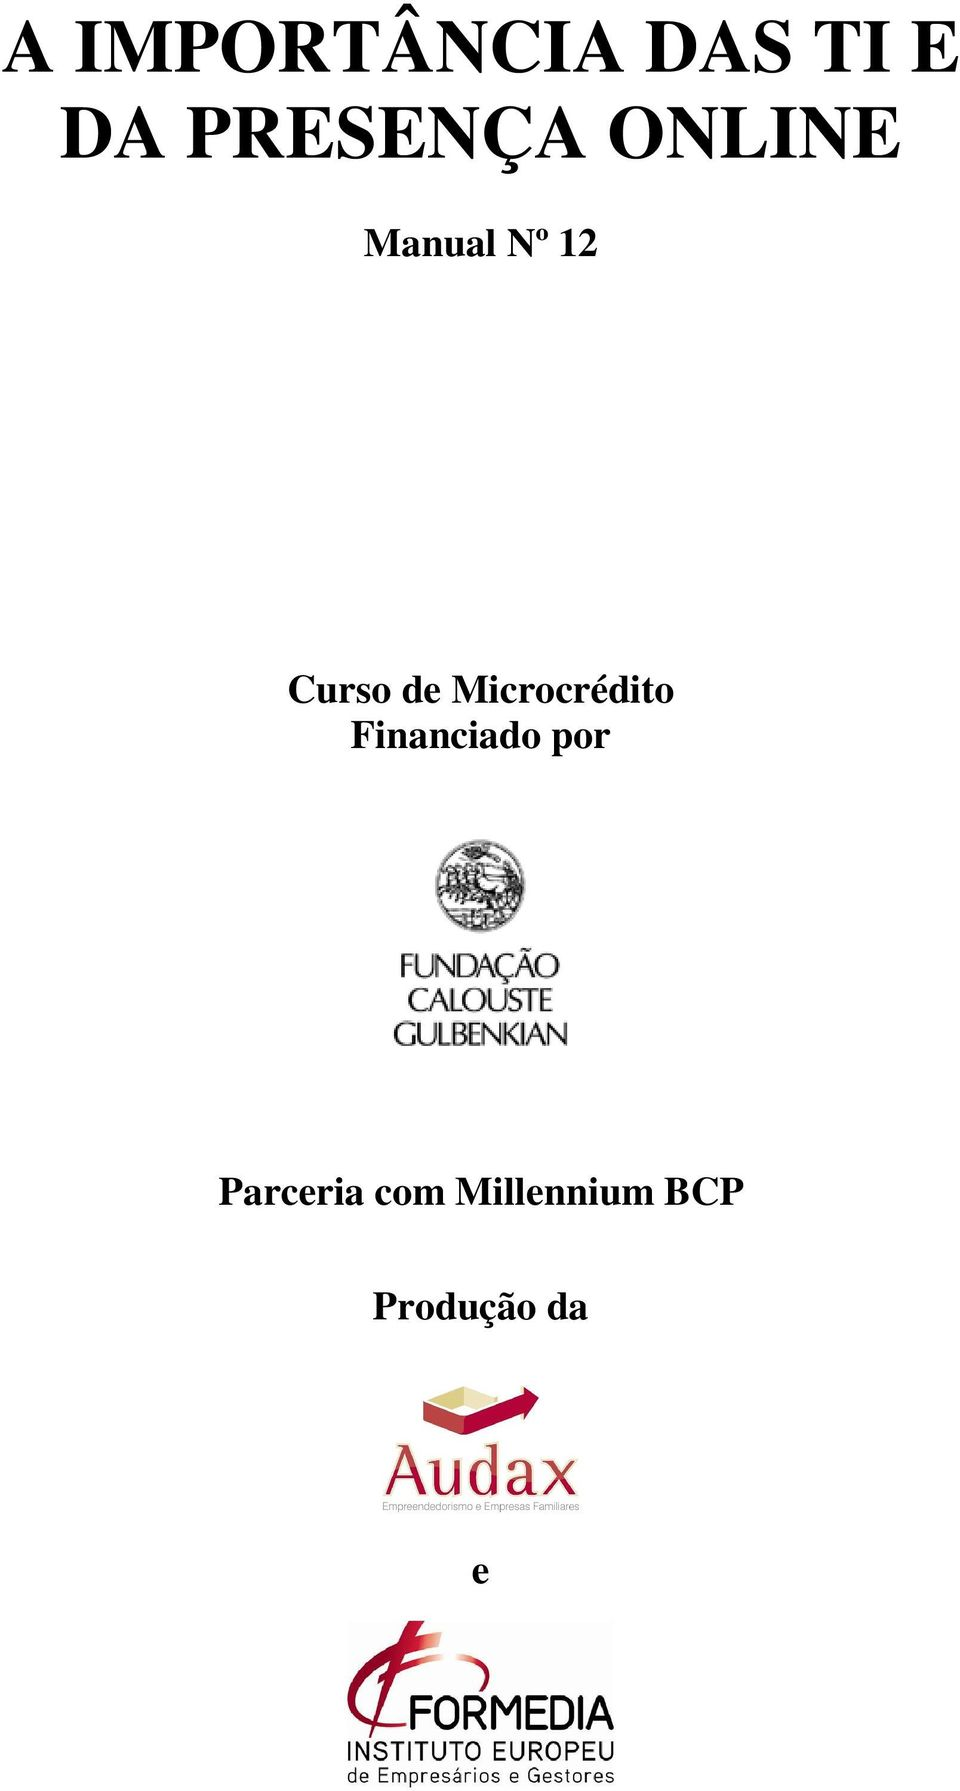 Curso de Microcrédito Financiado